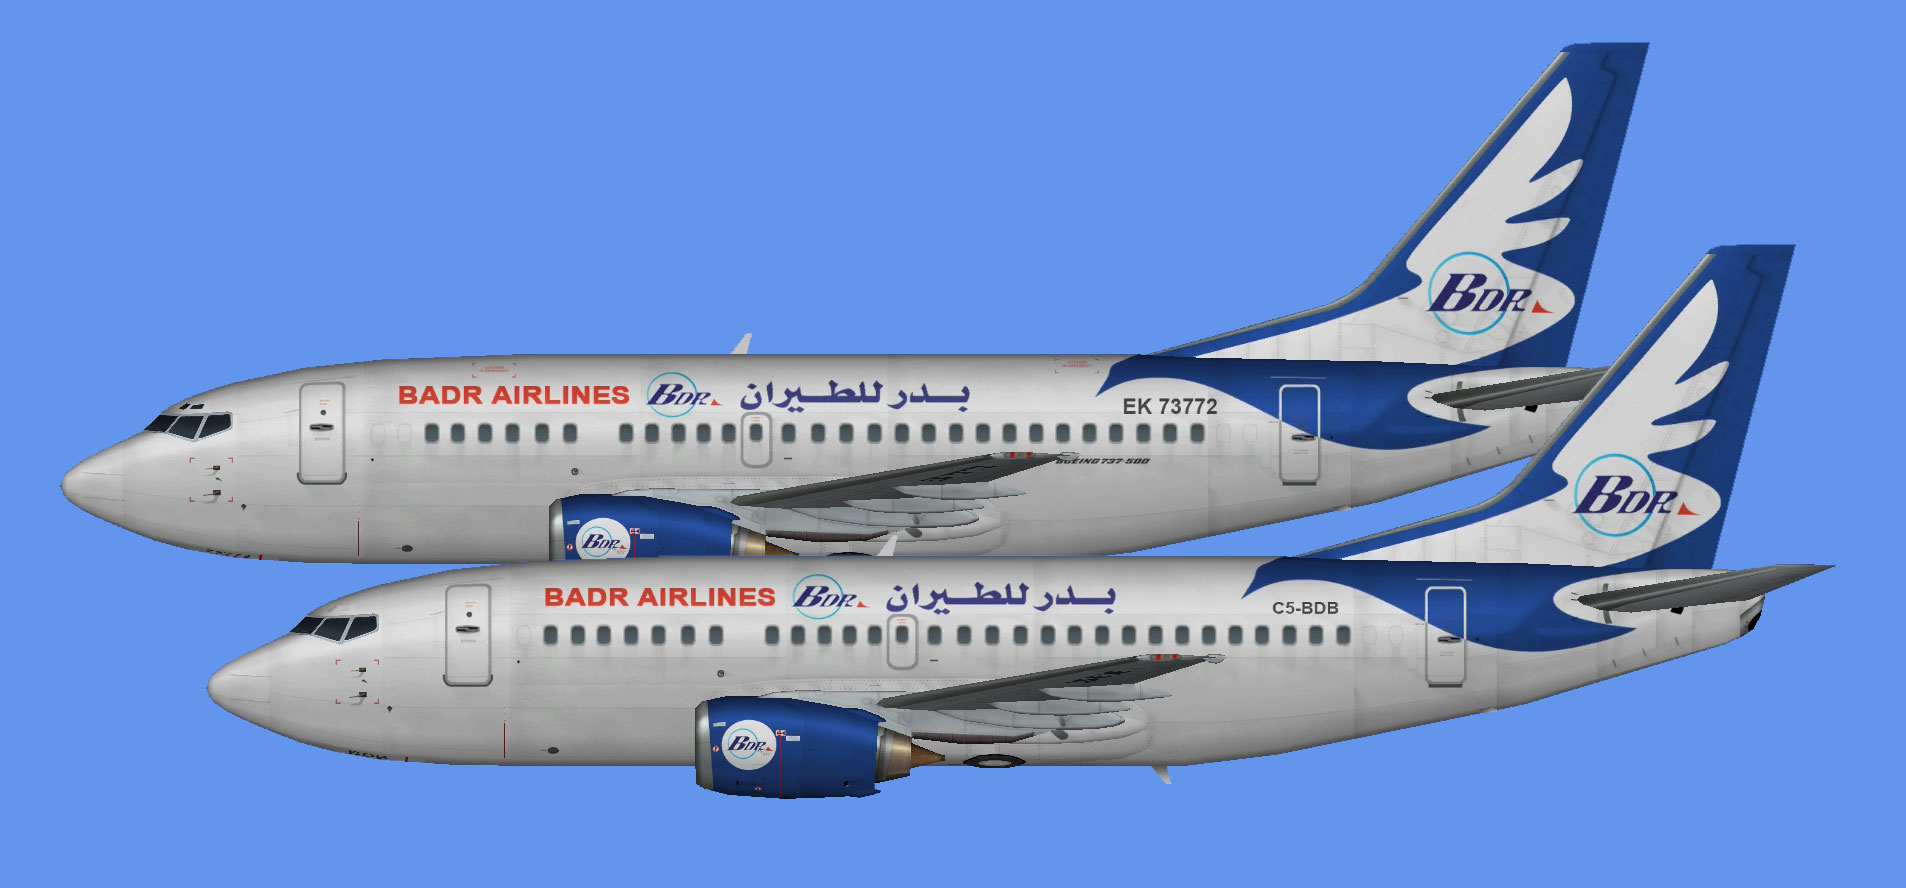 Badr Airlines Boeing 737-500